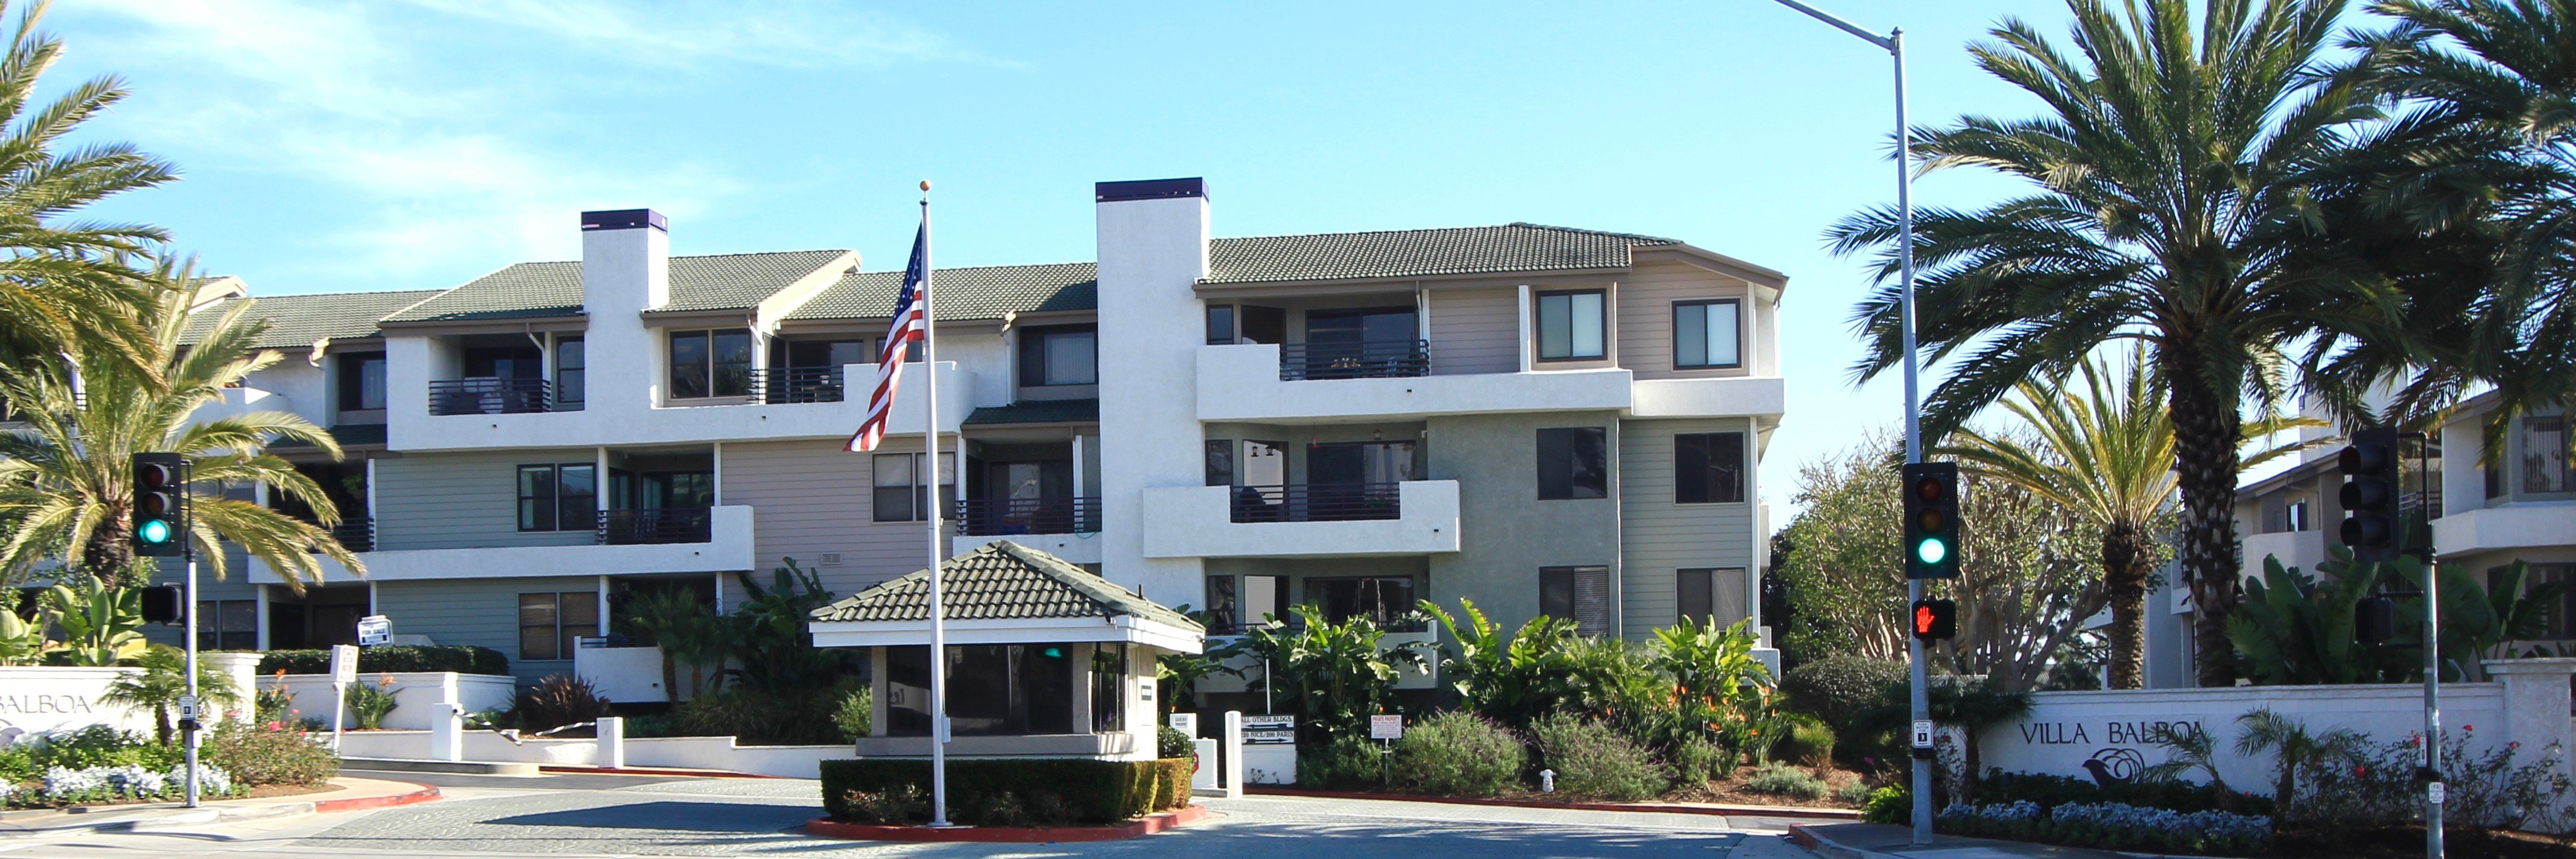 Villa Balboa is a housing community located within the city of Newport Beach, CA